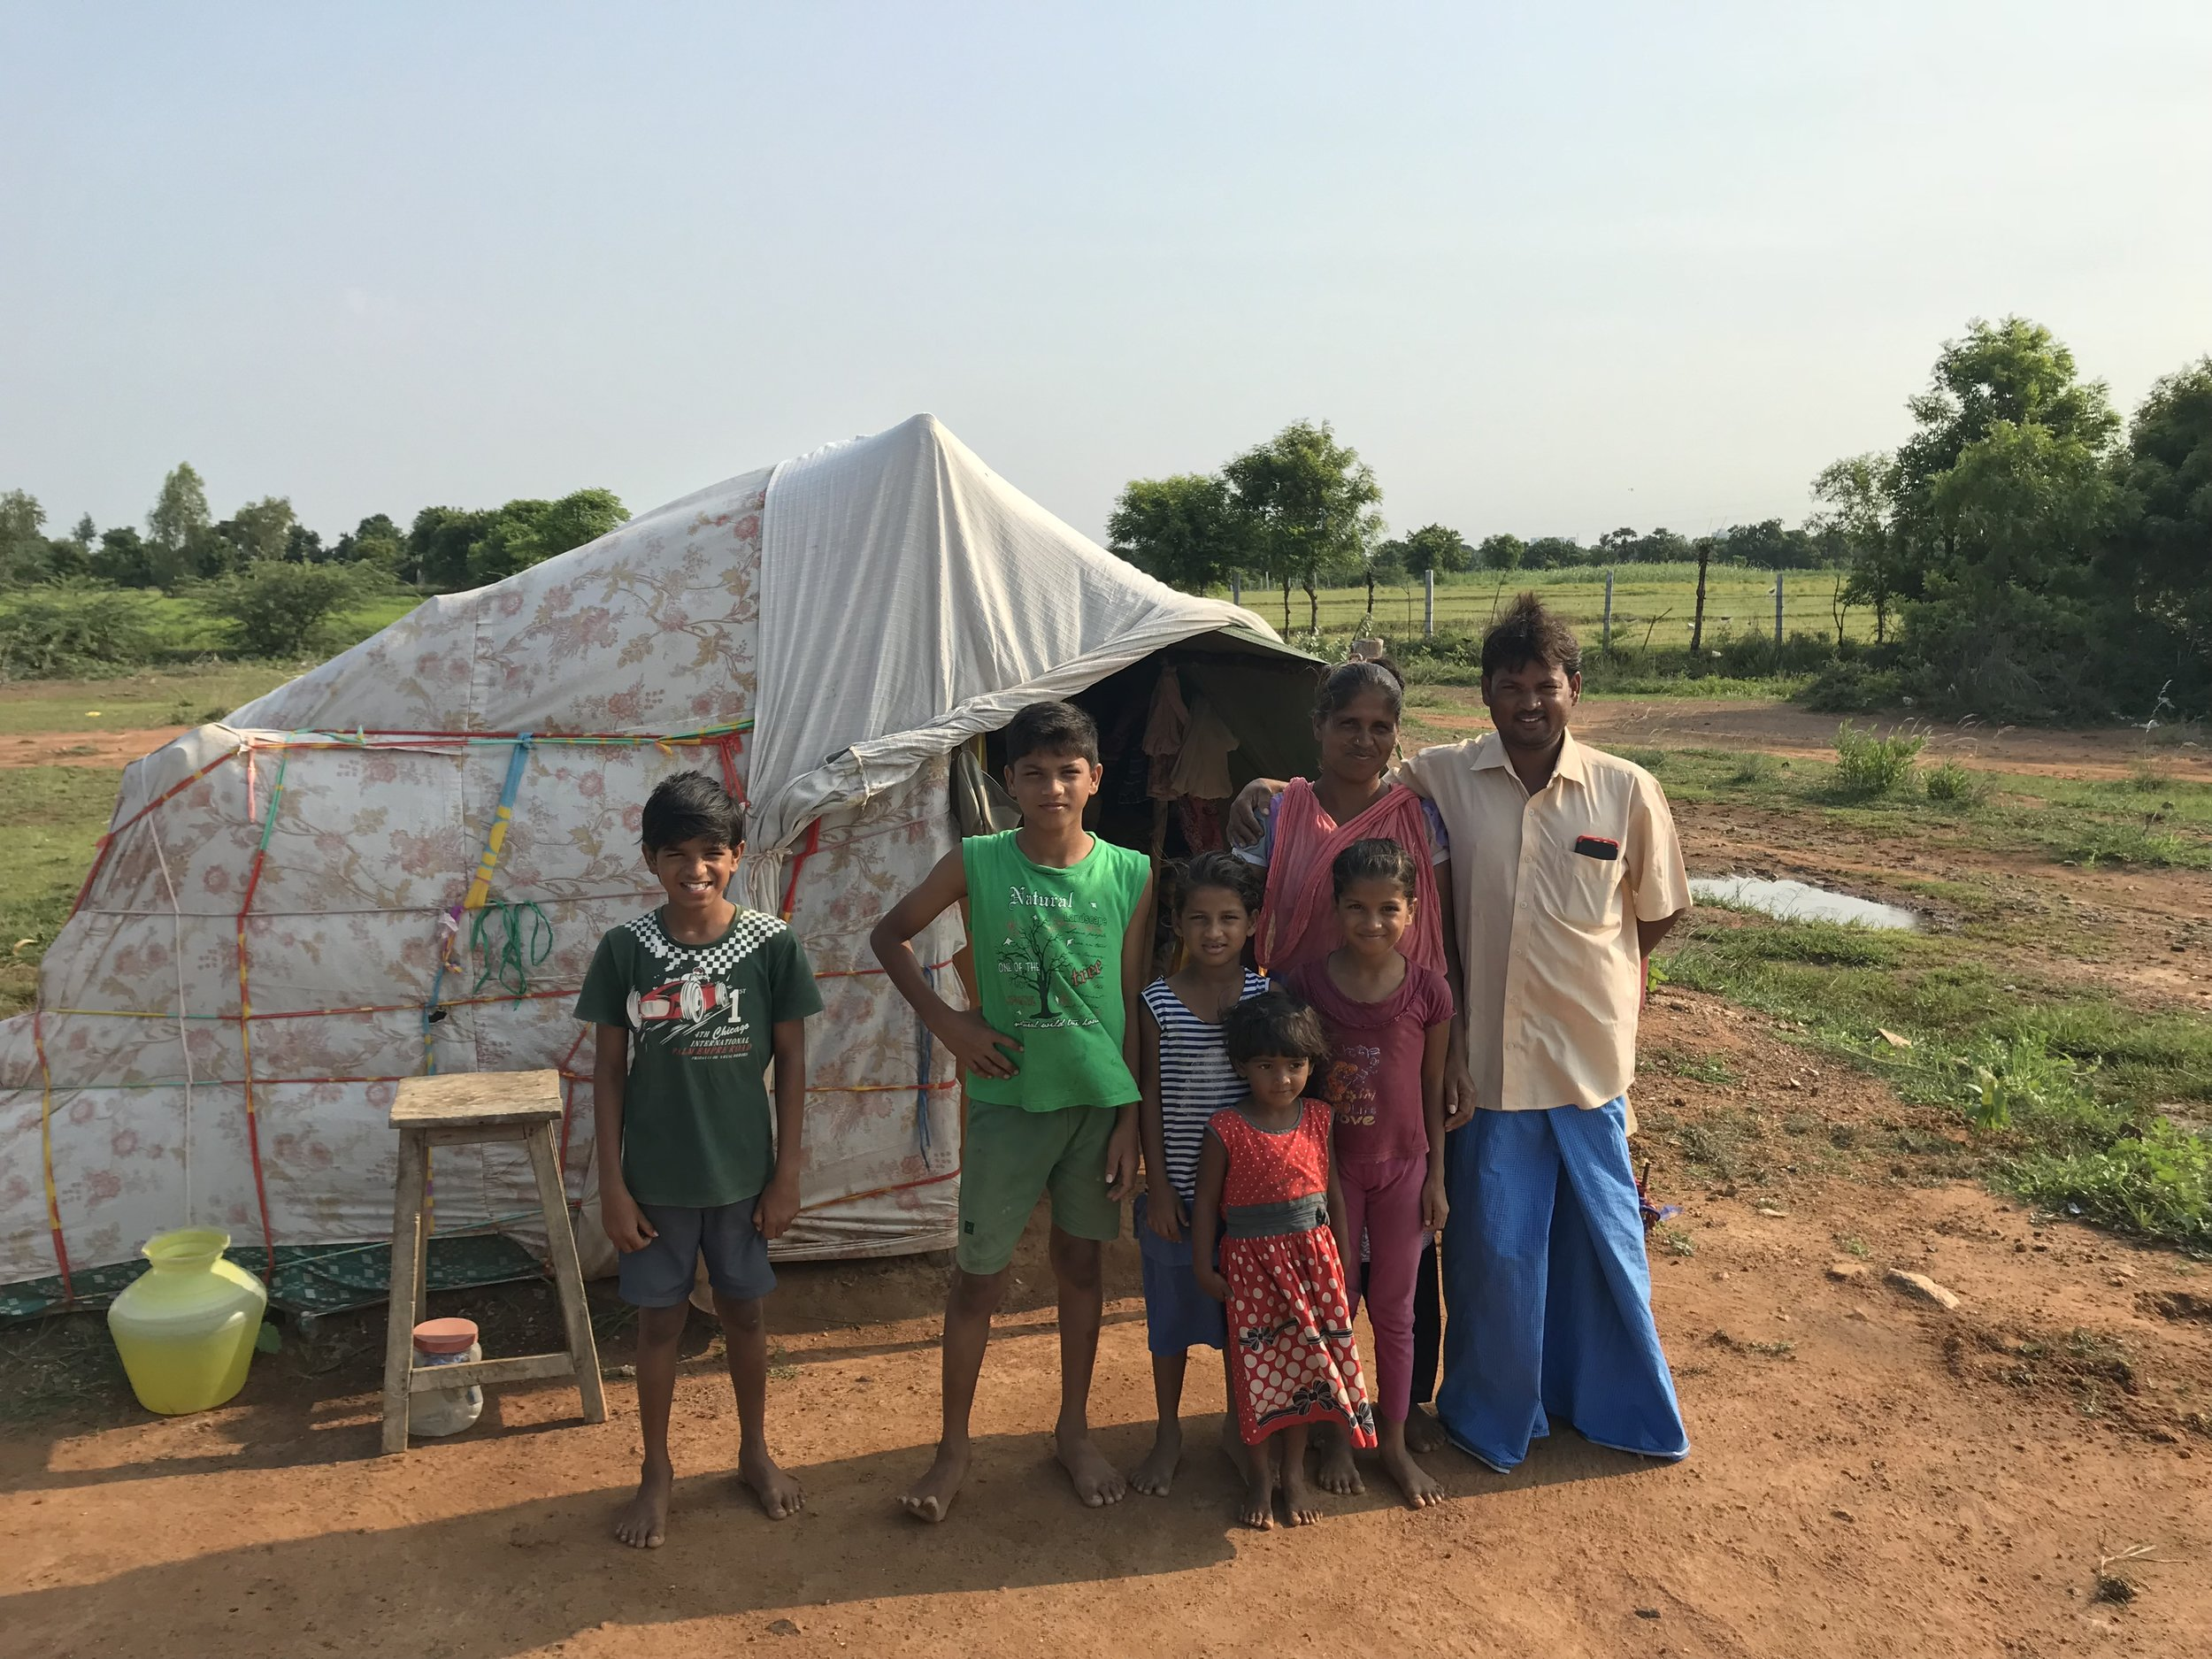 DONATE - House on the Rock Campain – $10,000 by November 1st to provide 4 new homes for families in the southern region of Chennai, IndiaProvision for SEND Hope HIV+ Orphan Care - $5,000 by the end of 2019 to provide annual cushion for unsponsored children.